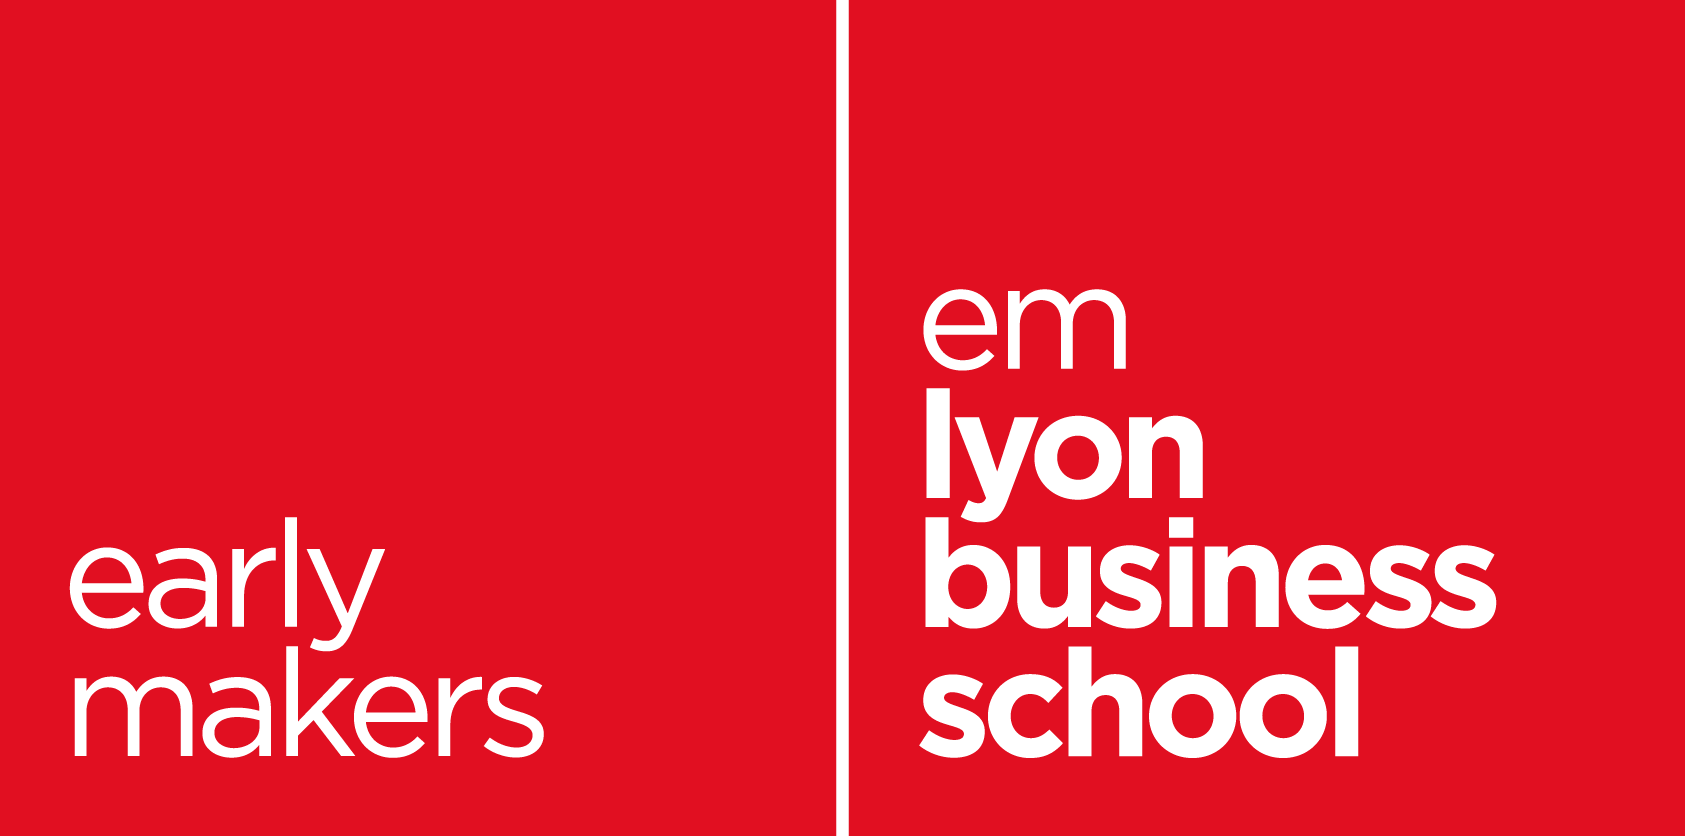 emlyon business school - Taxe d'Apprentissage